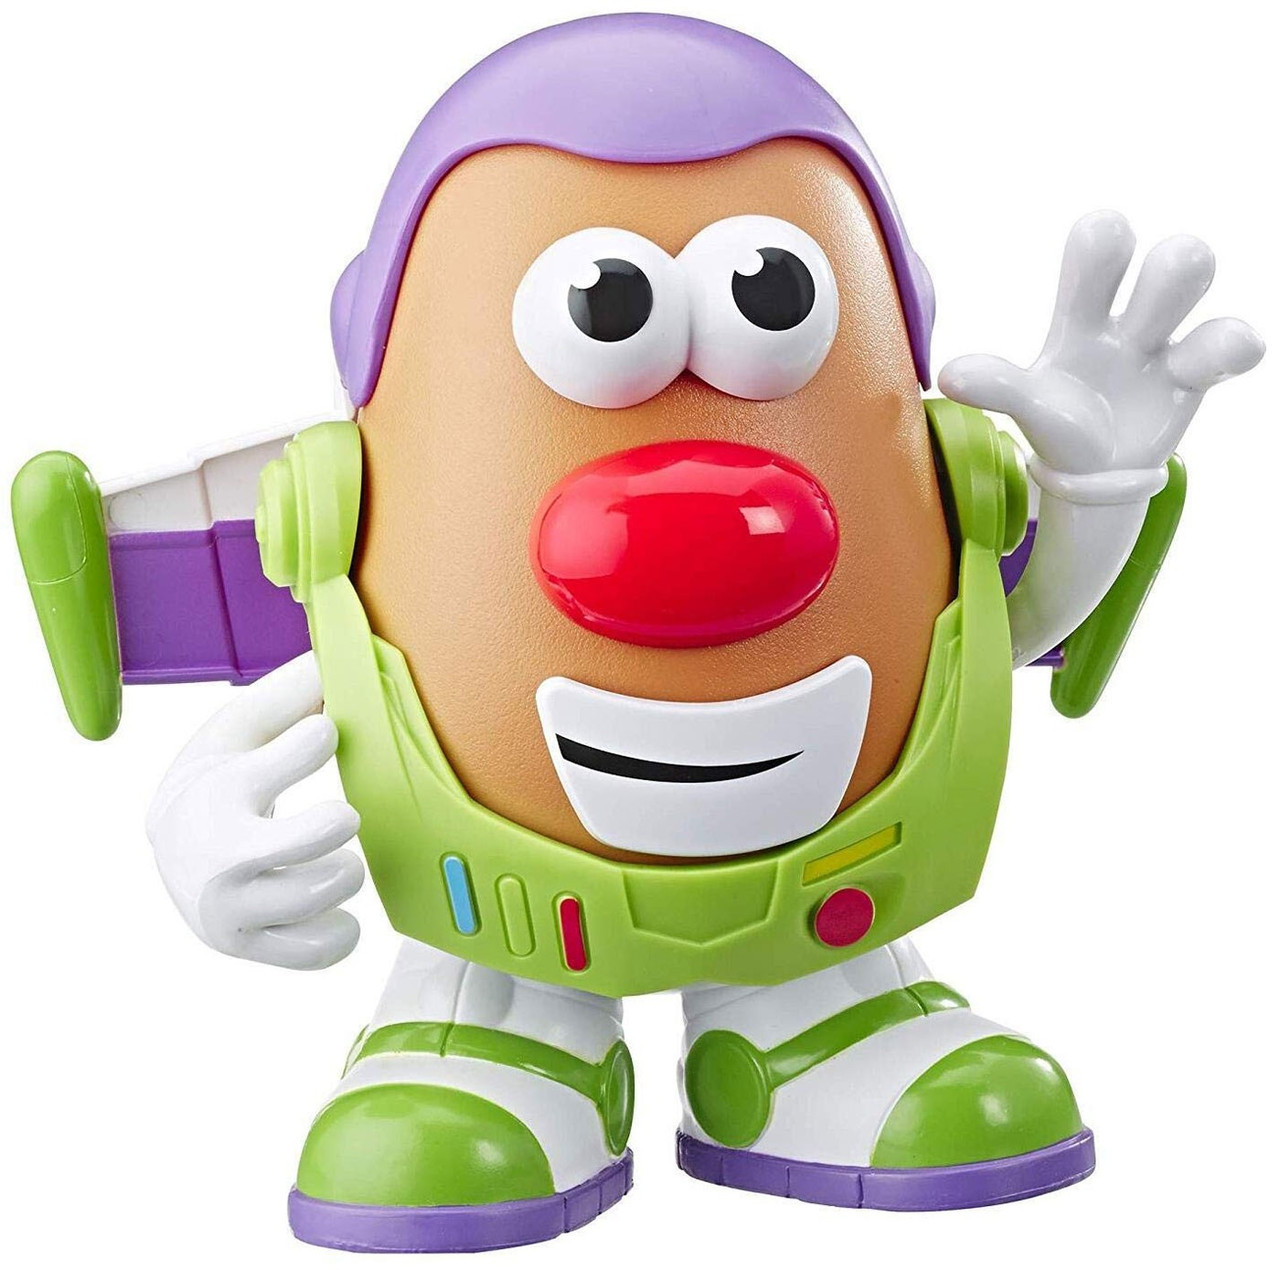 Toy Story 4 Mr Potato Head Spud Lightyear Figure Pre Order Ships March